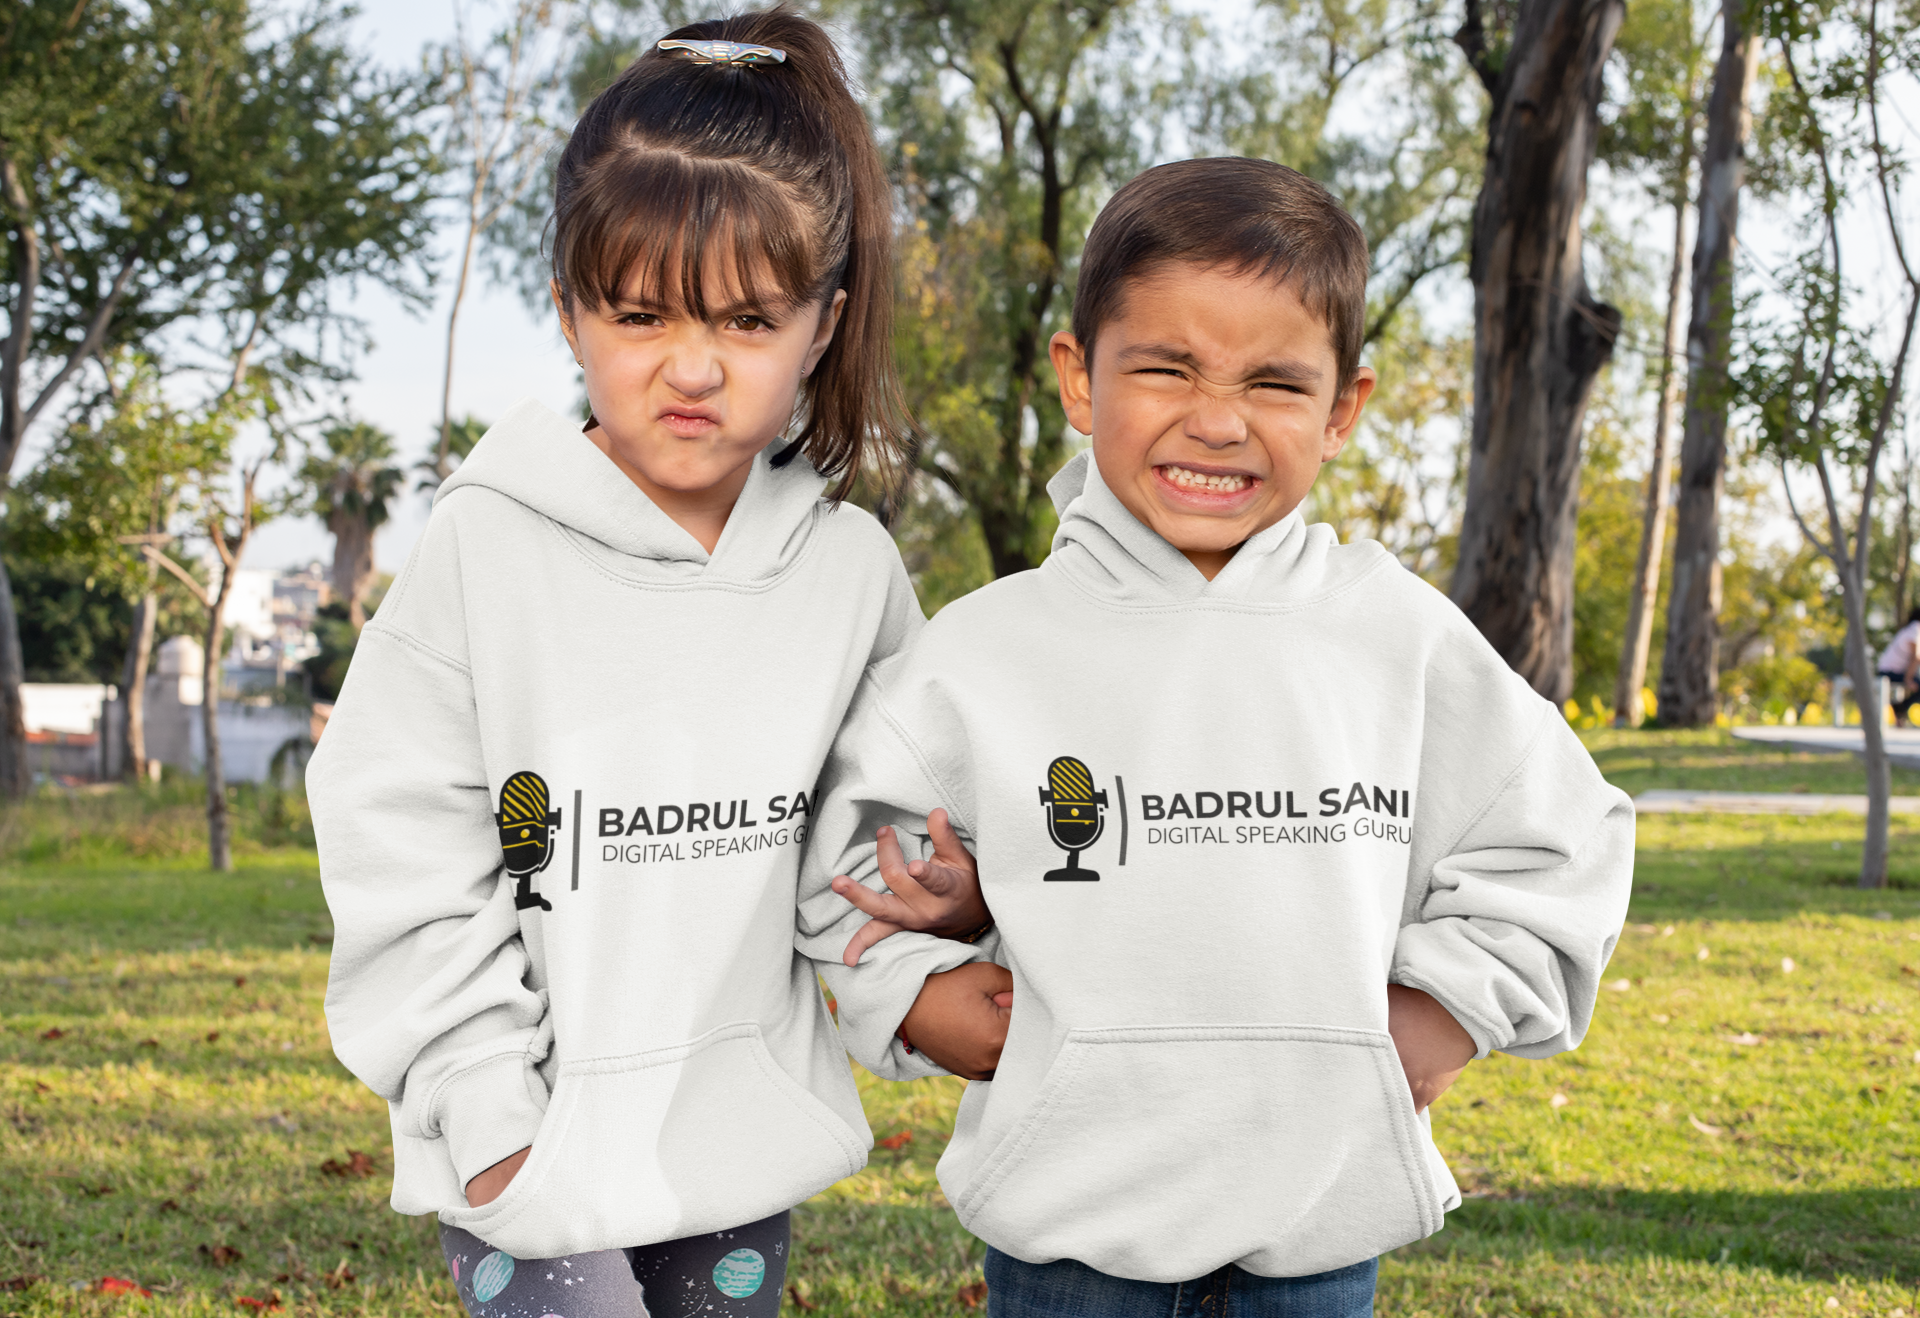 mockup-of-brother-and-sister-wearing-hoodies-at-the-park-31669.png